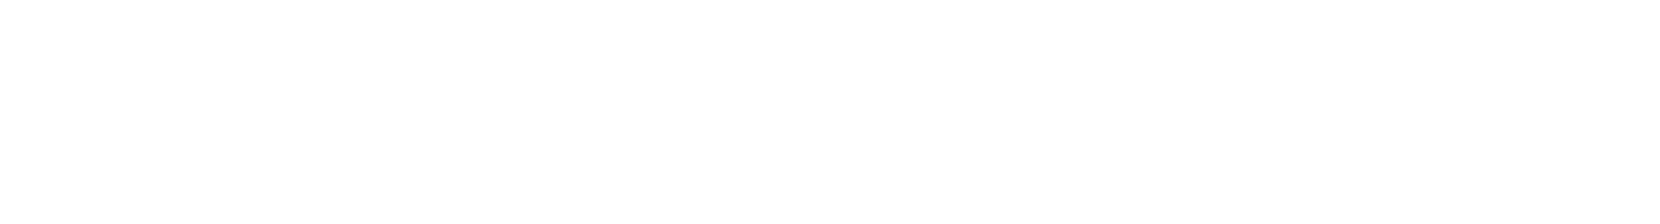 memorial day sale. time for summer. time to save. selection below includes sale and regular price items